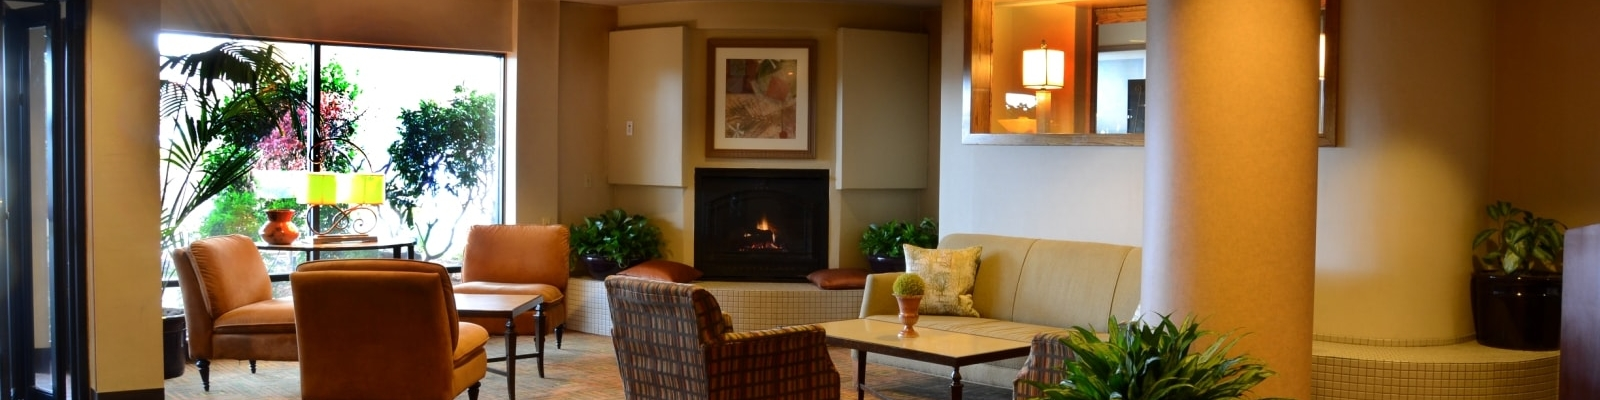 Monarch Hotel & Conference Center - Hotels in Clackamas, Oregon